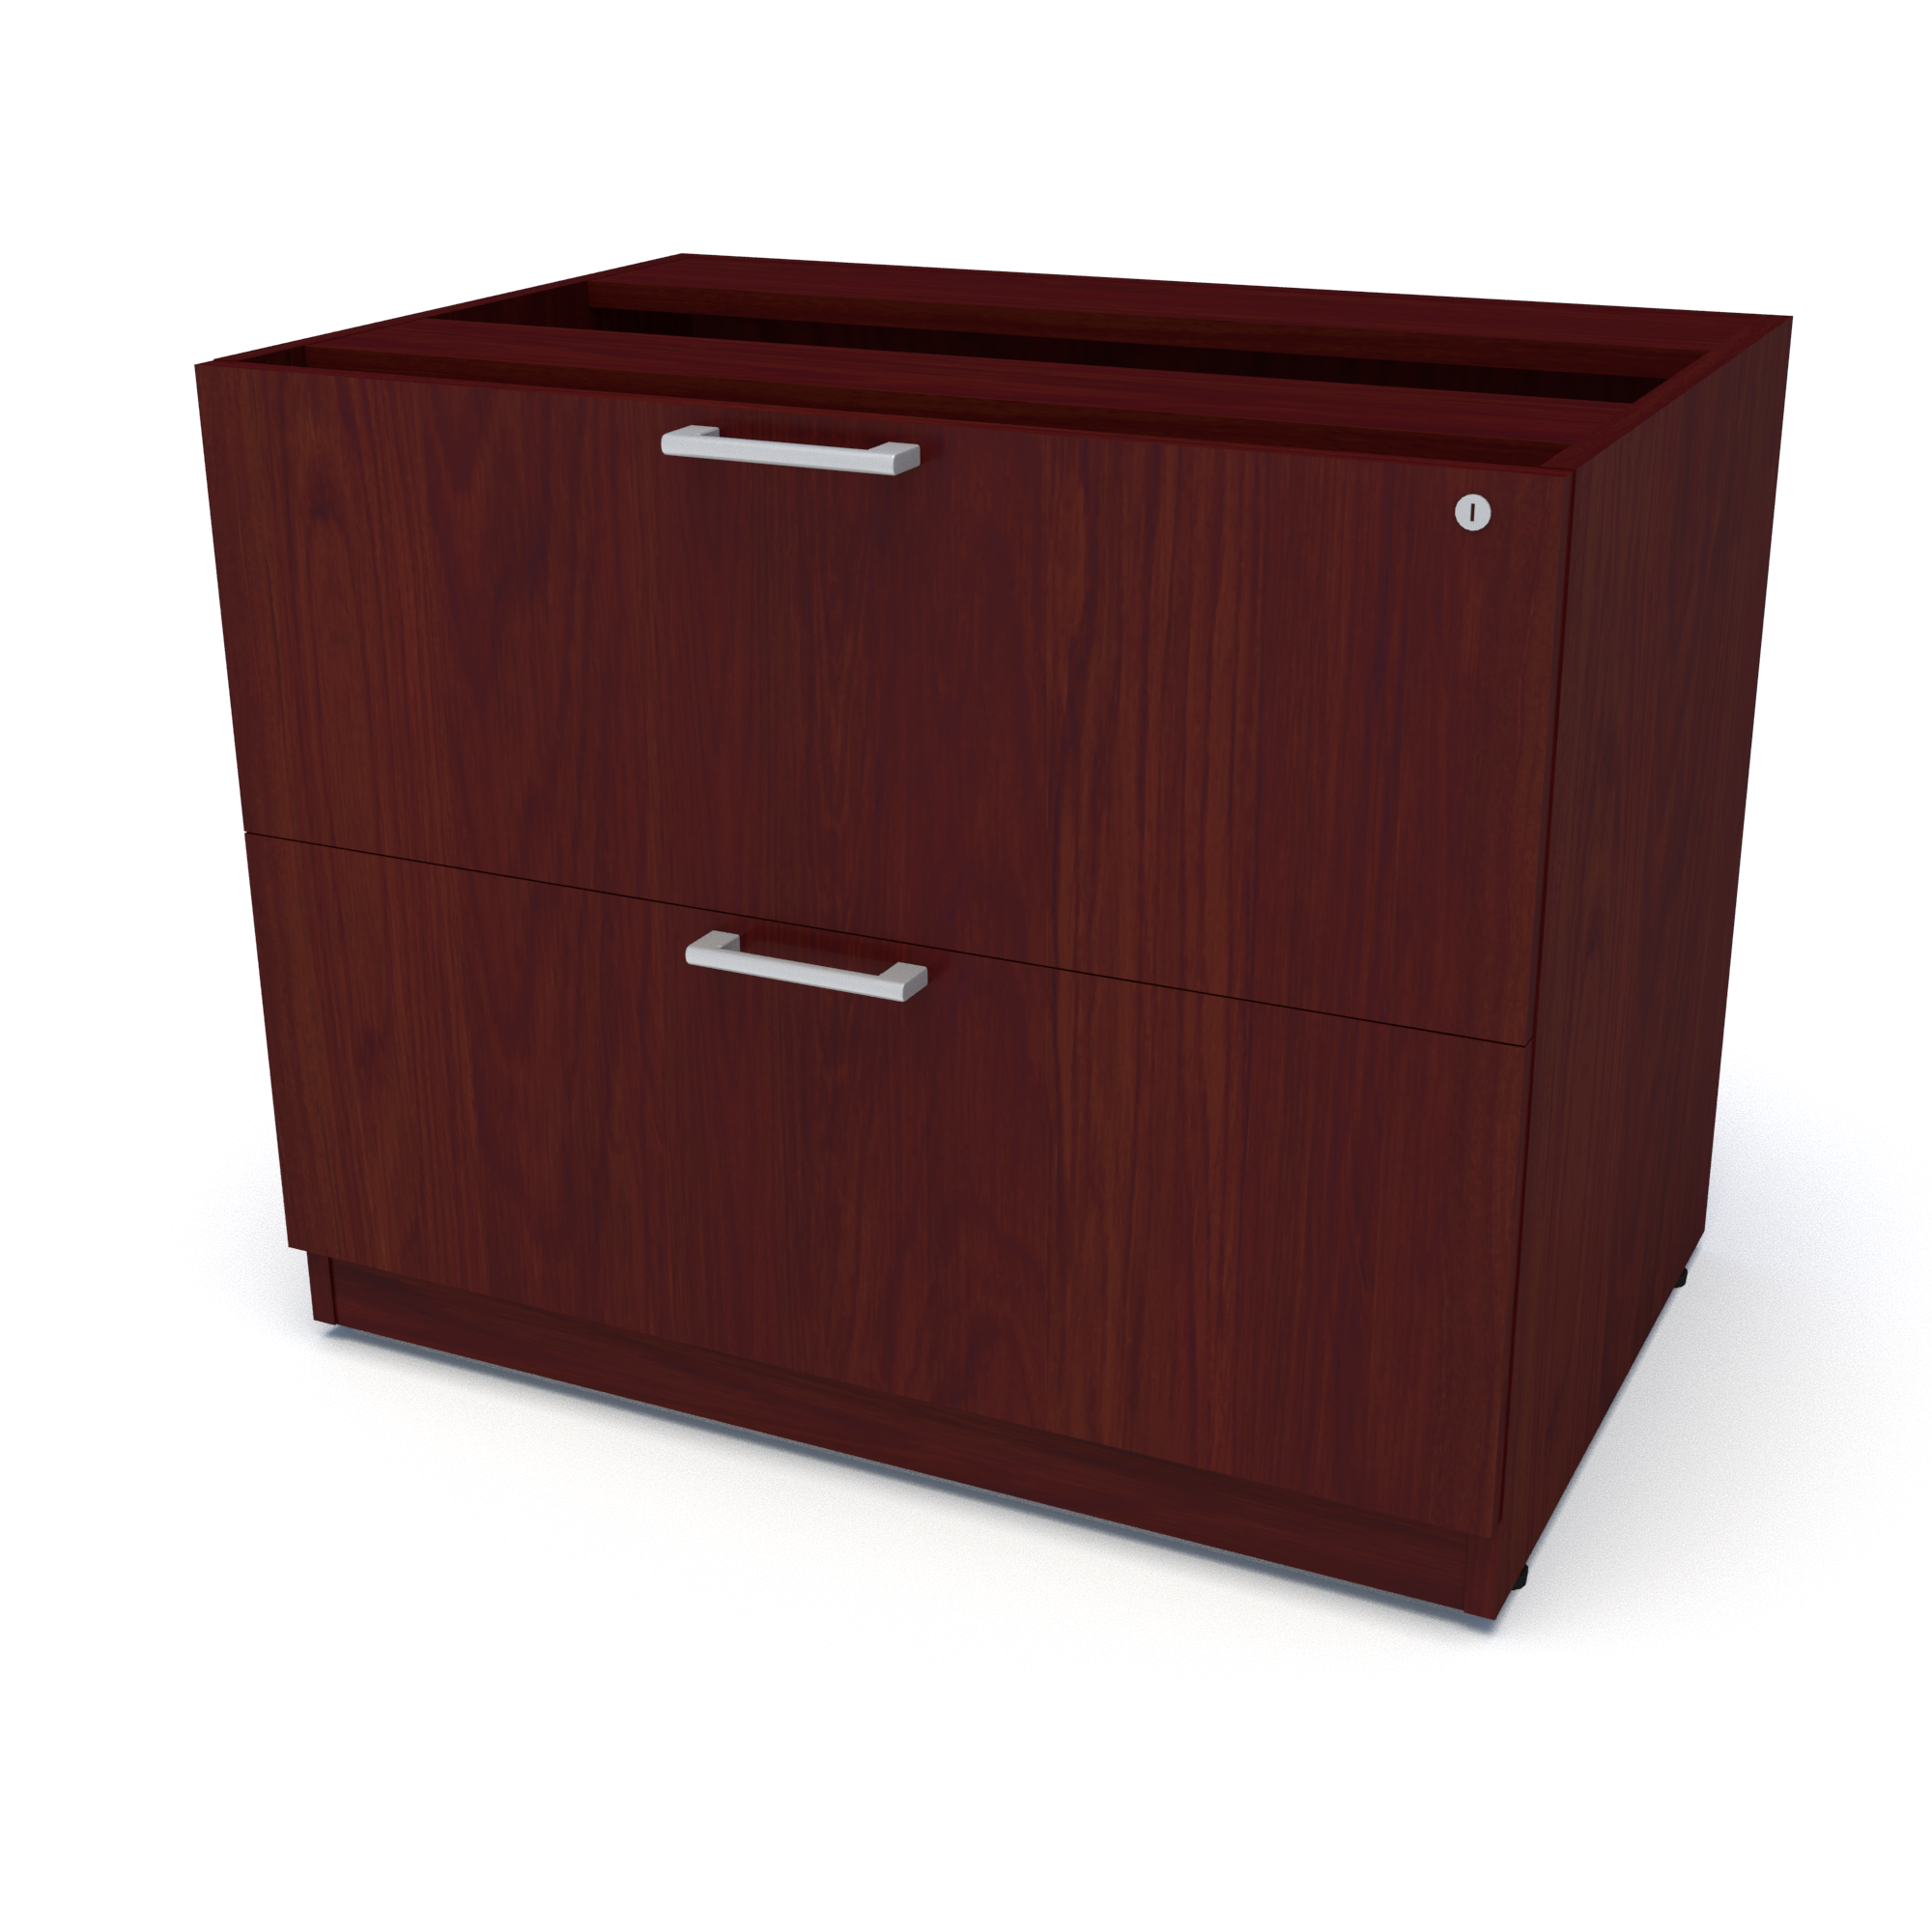 Top Supporting Lateral File (American Cherry)